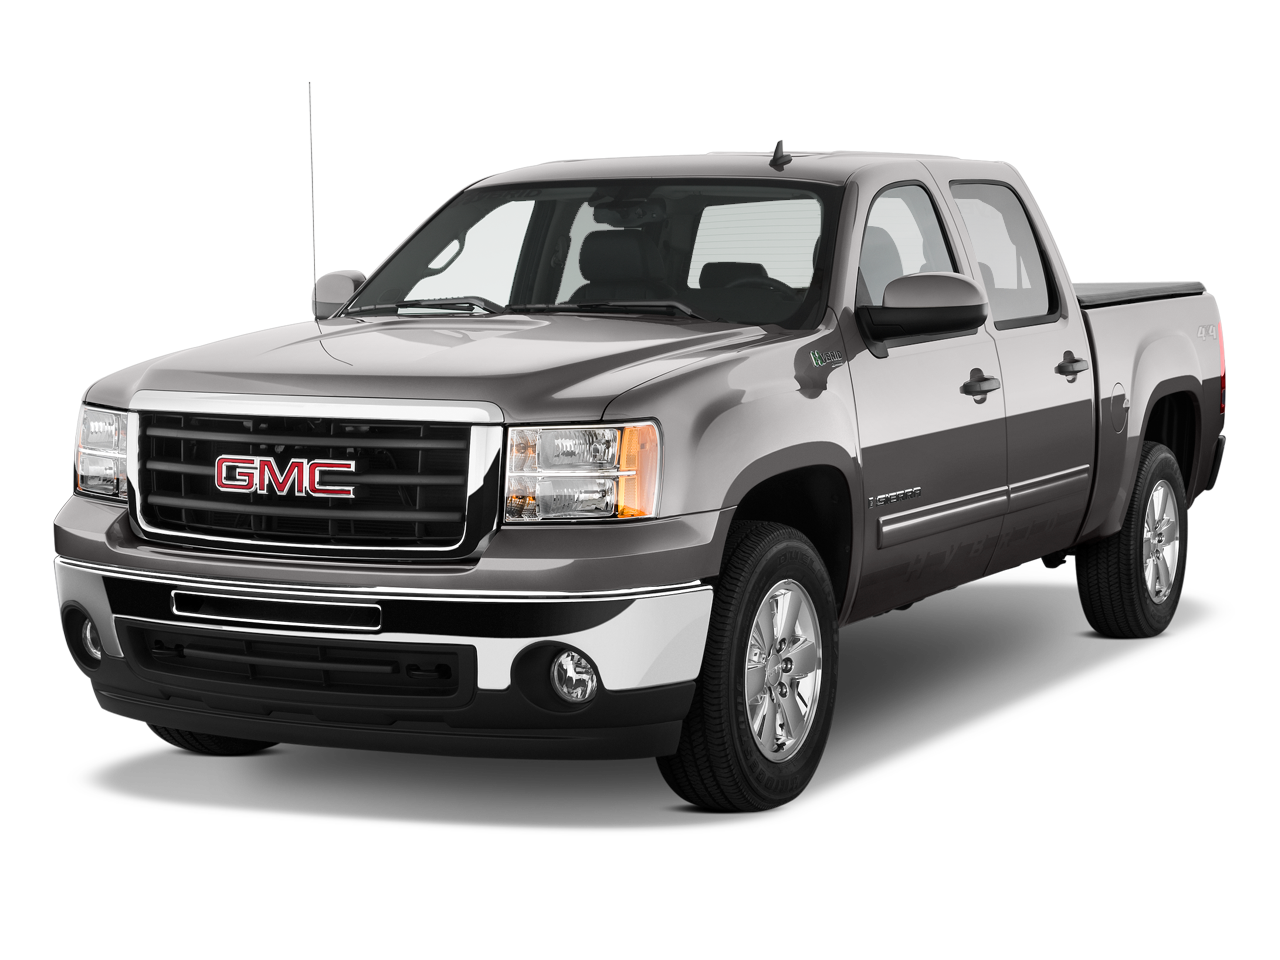 2009 gmc sierra hybrid first drive review gmc hybrid. Black Bedroom Furniture Sets. Home Design Ideas